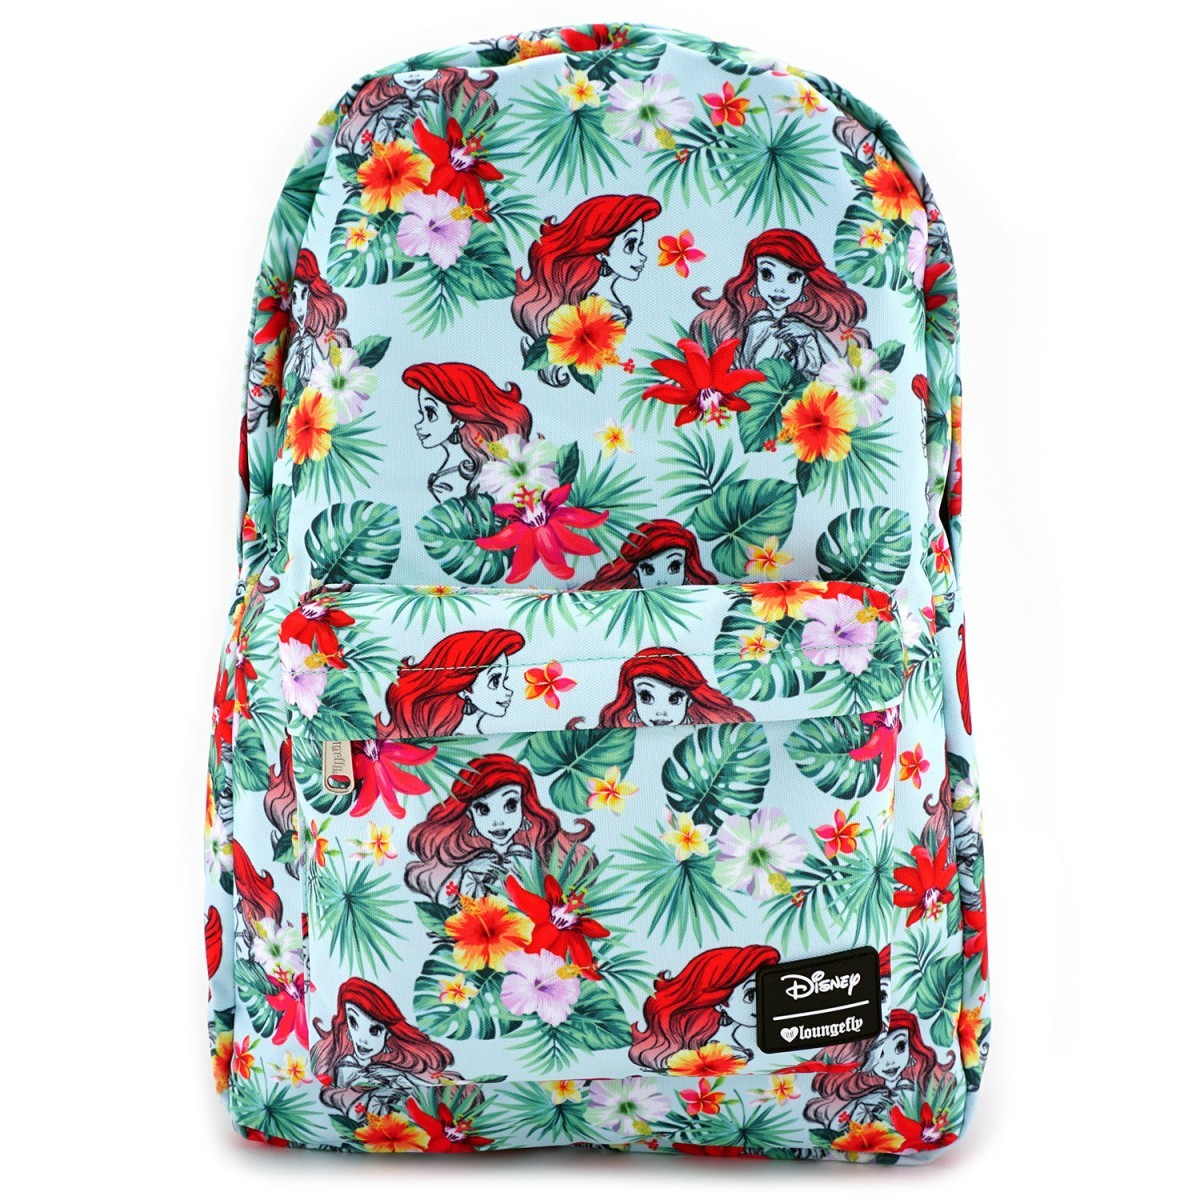 8c3d0bc178 Loungefly Disney Ariel Sea AOP Backpack image ...